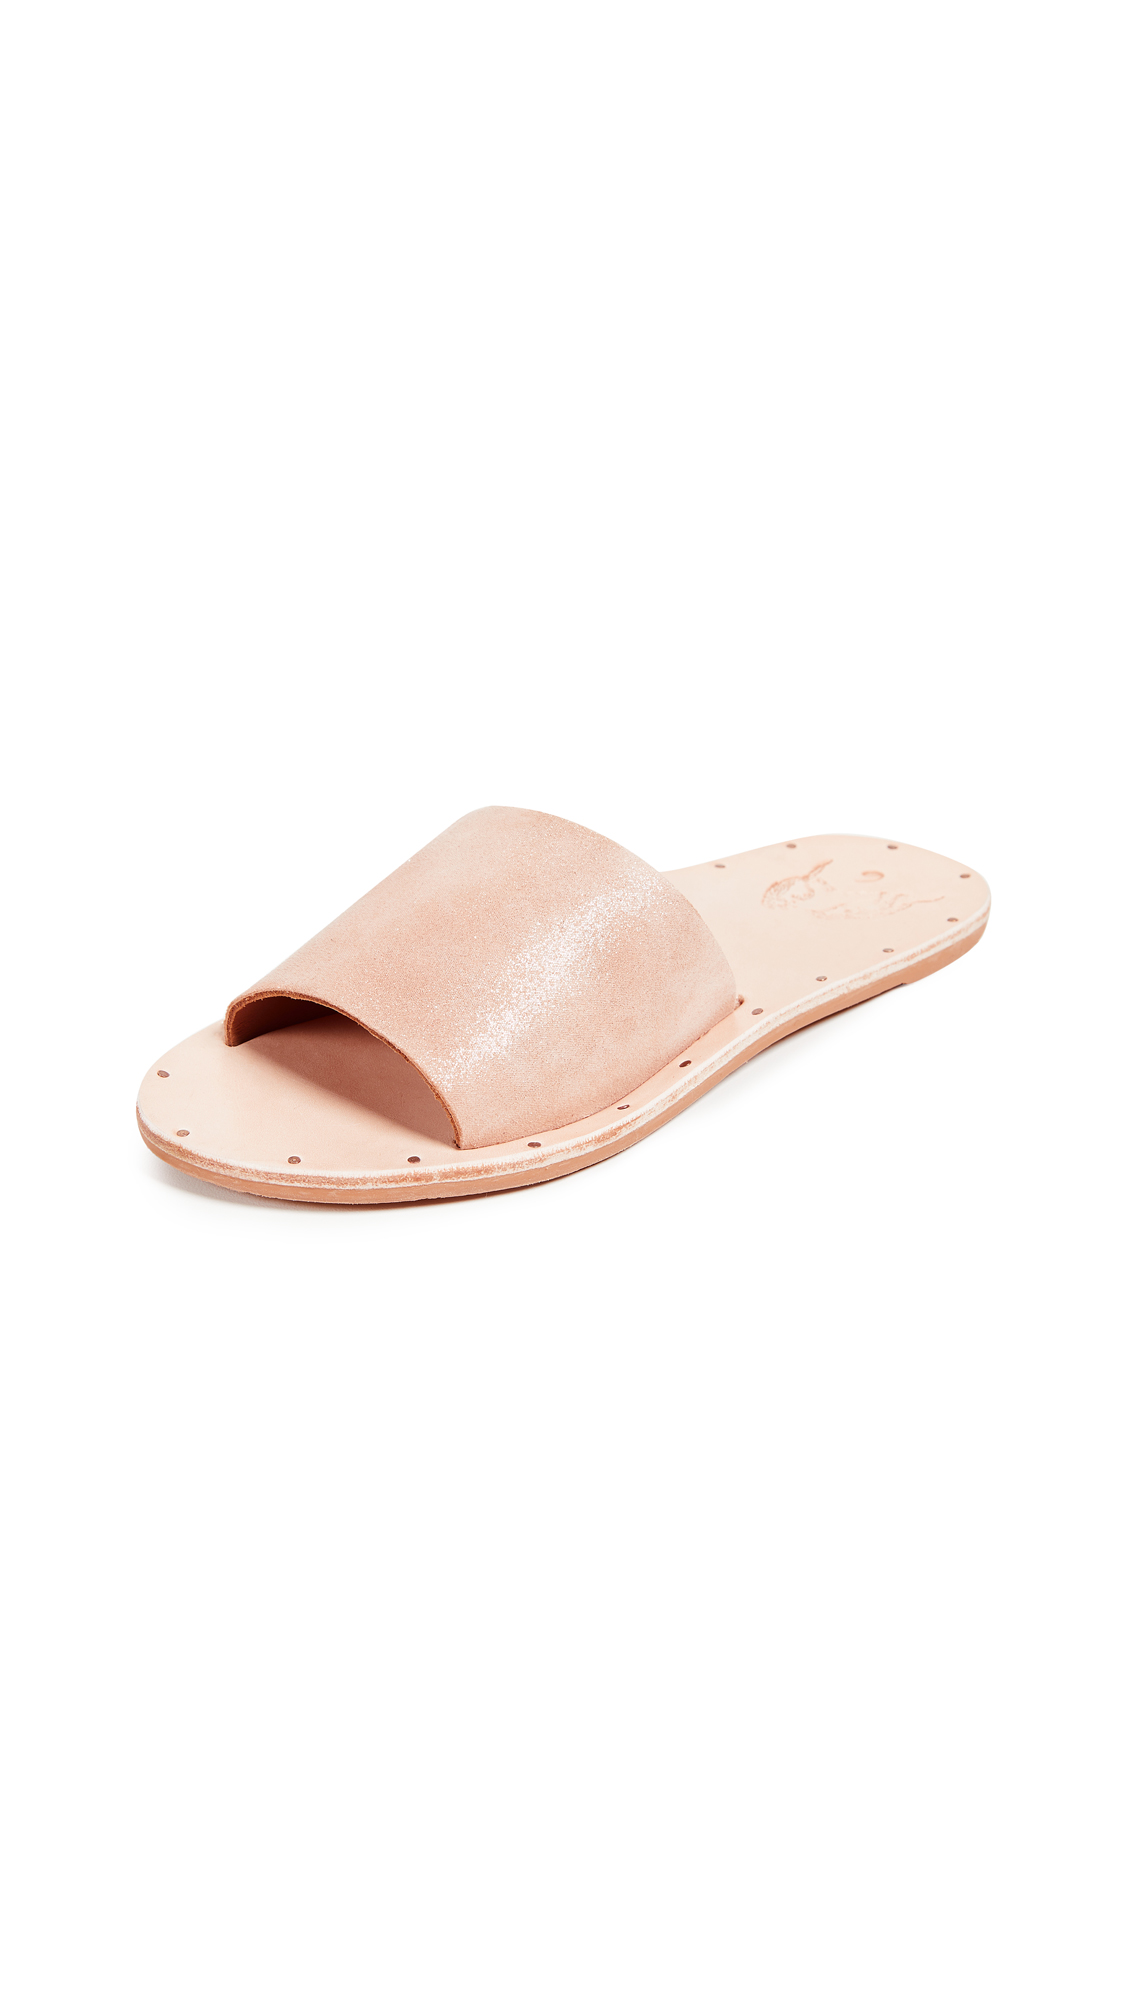 beek Mocking Bird Slides - Apricot Metallic/Nat